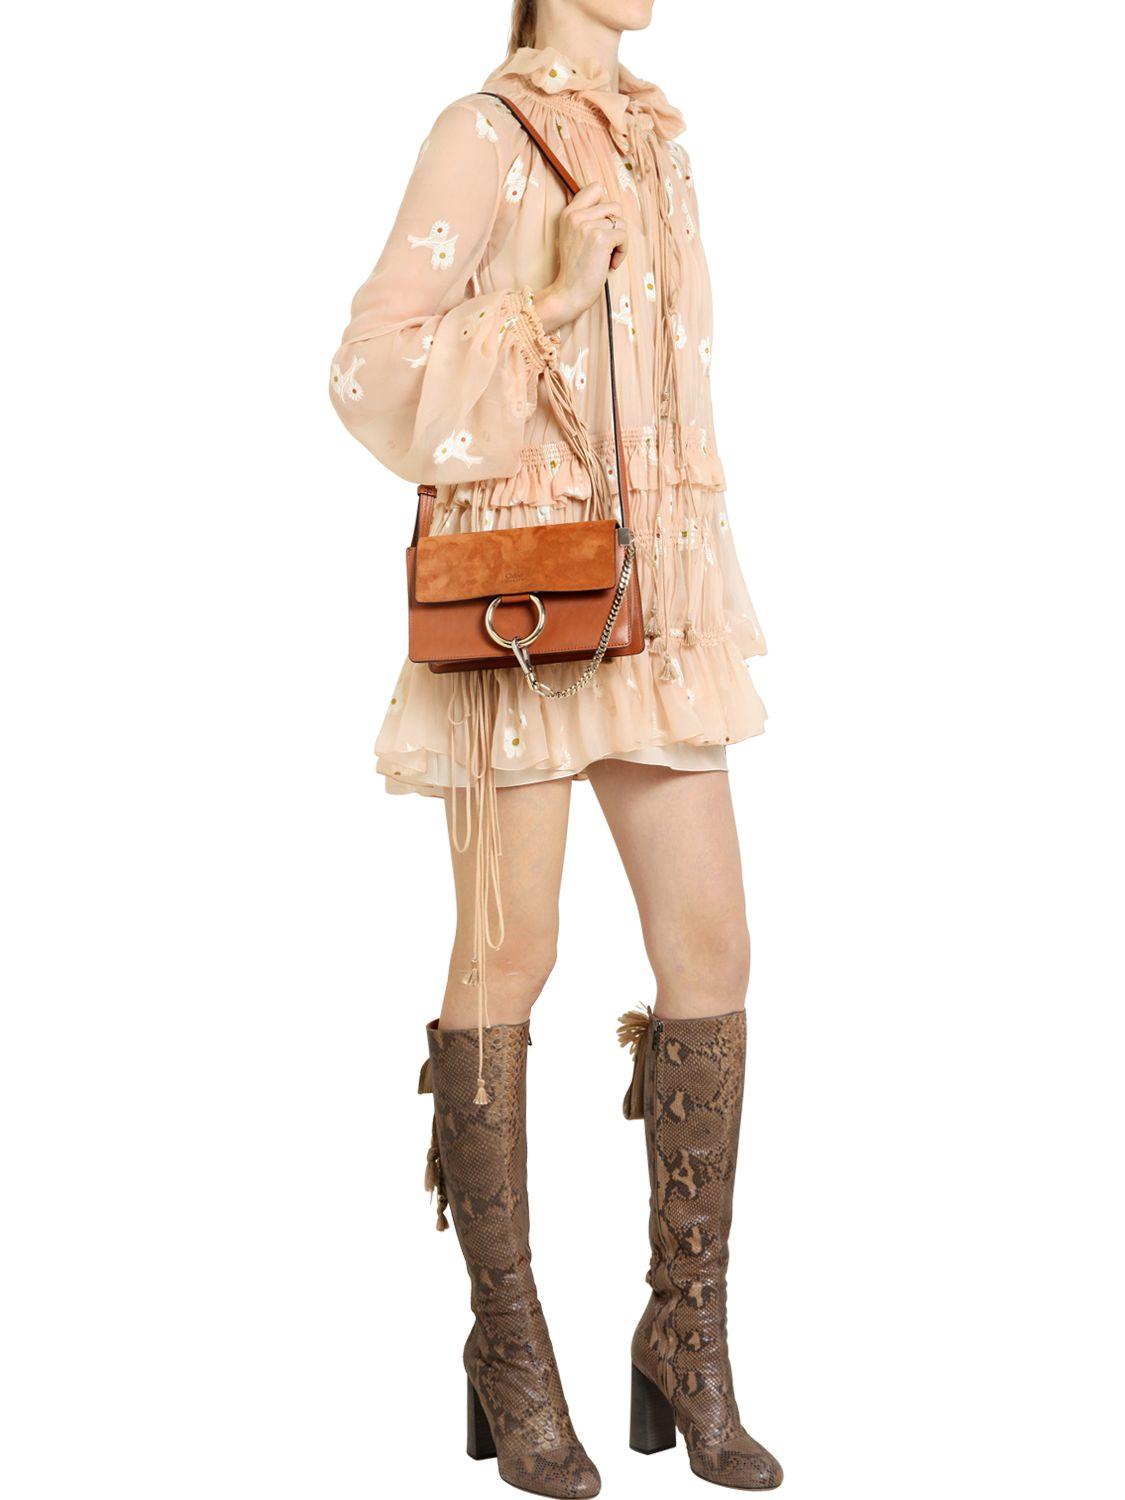 Chlo�� Small Faye Leather \u0026amp; Suede Shoulder Bag in Brown | Lyst